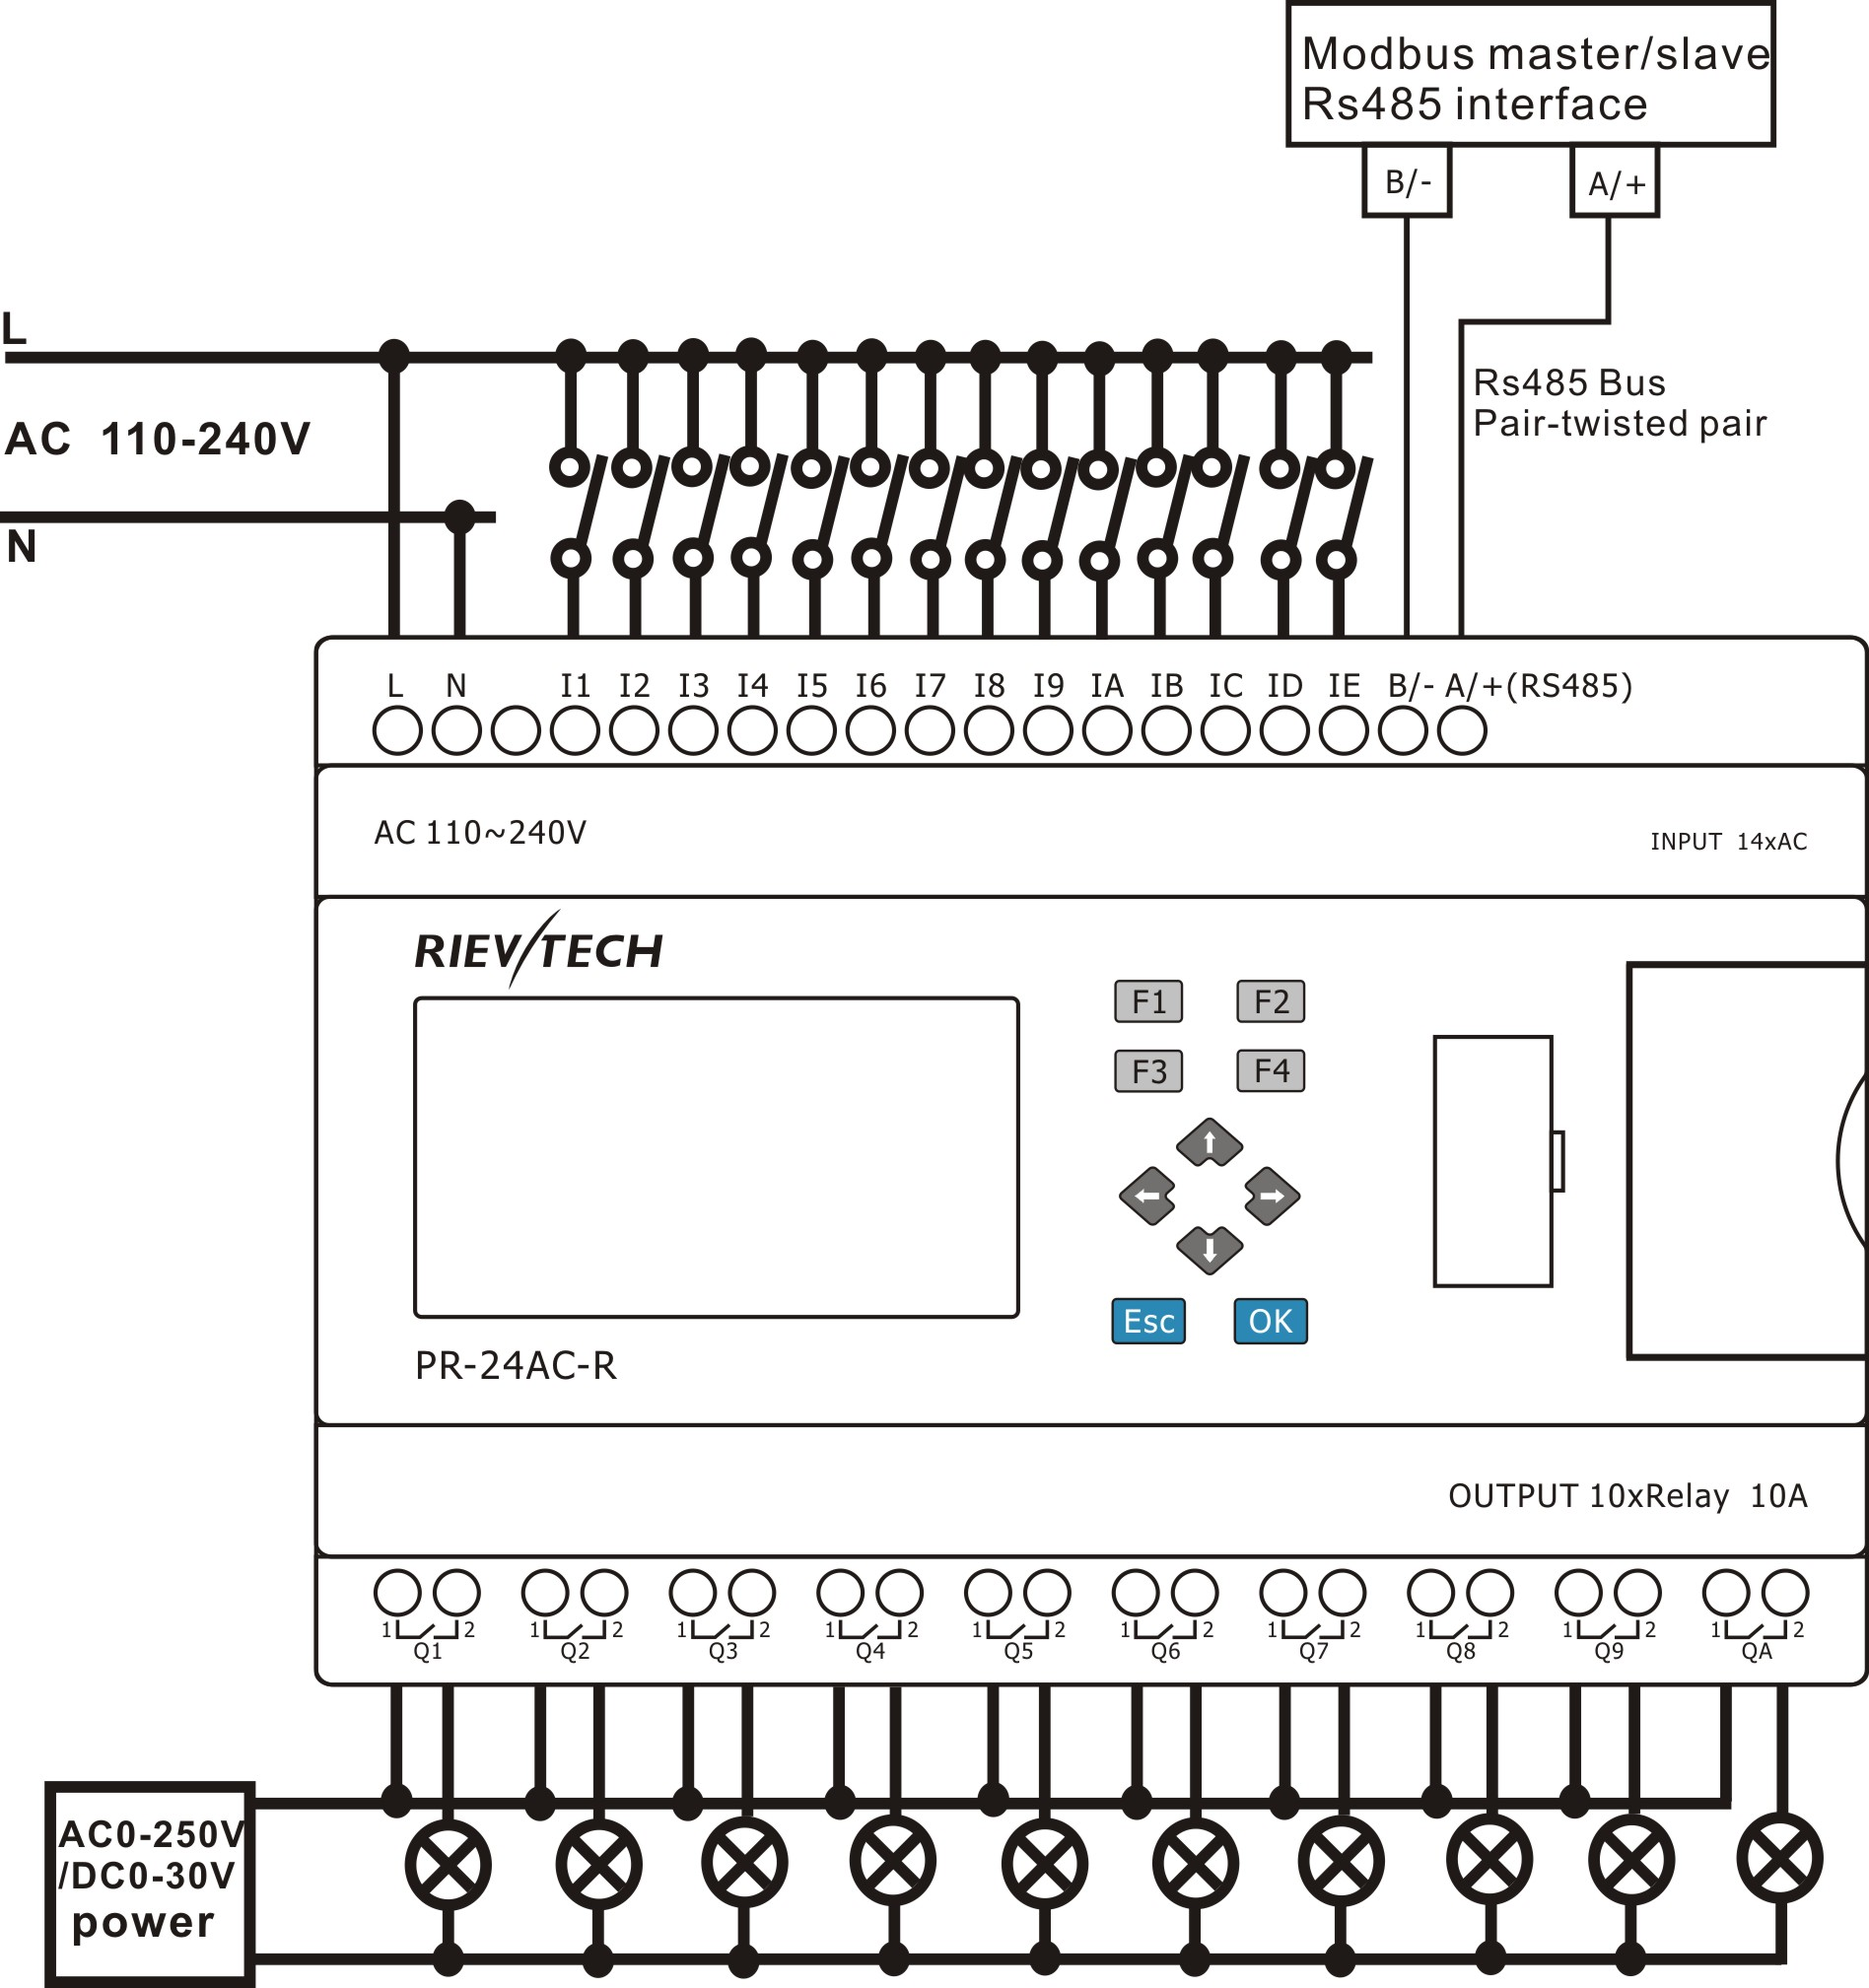 logo wiring diagram pr-24ac-r - buy plc, sms plc, siemens logo product on ...